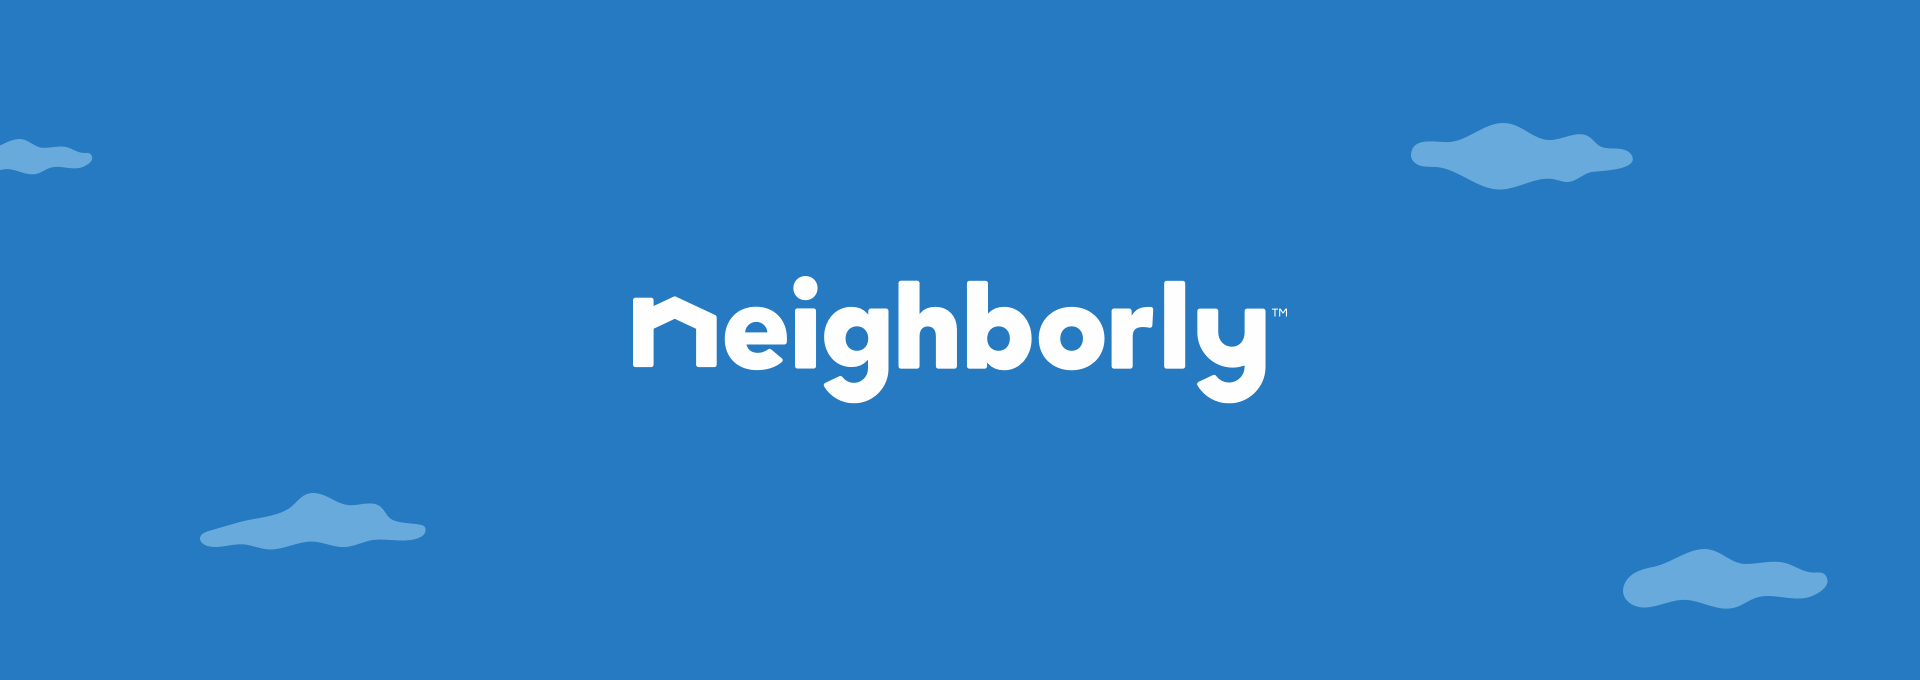 projectcover-neighborly@1x.png